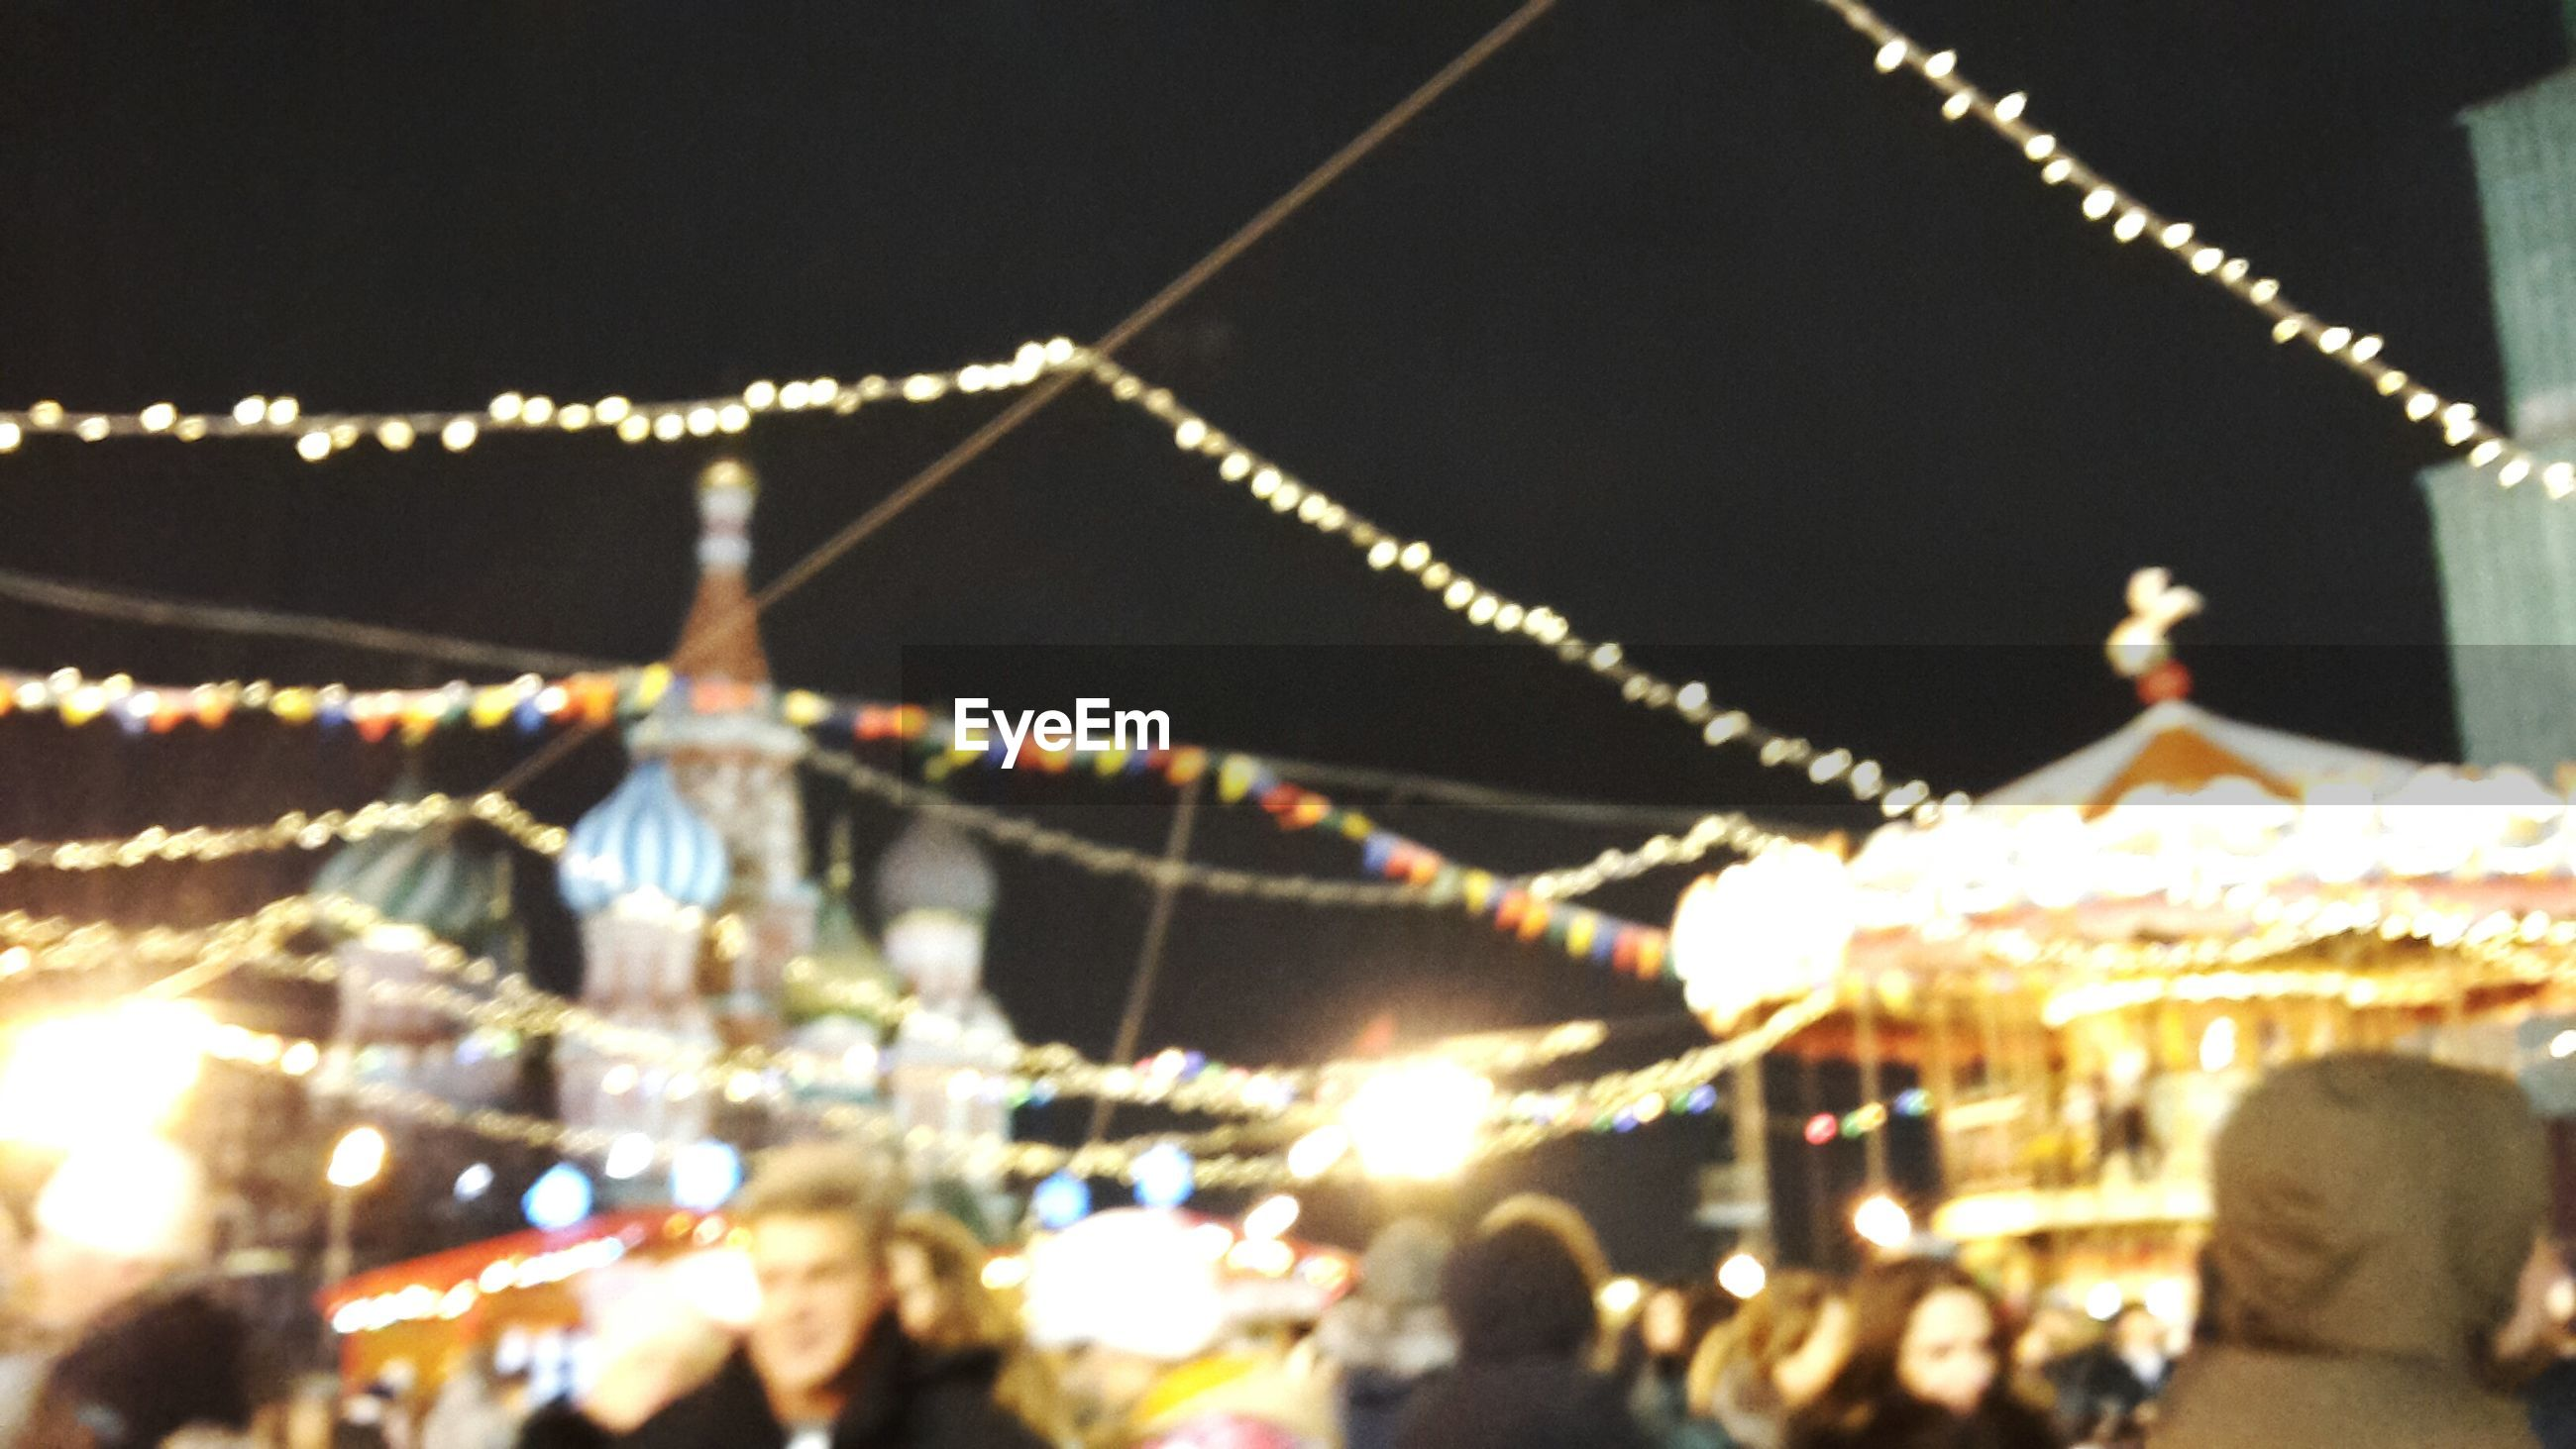 illuminated, night, lighting equipment, tradition, religion, decoration, celebration, place of worship, cultures, spirituality, temple - building, hanging, traditional festival, glowing, arts culture and entertainment, focus on foreground, christmas, christmas lights